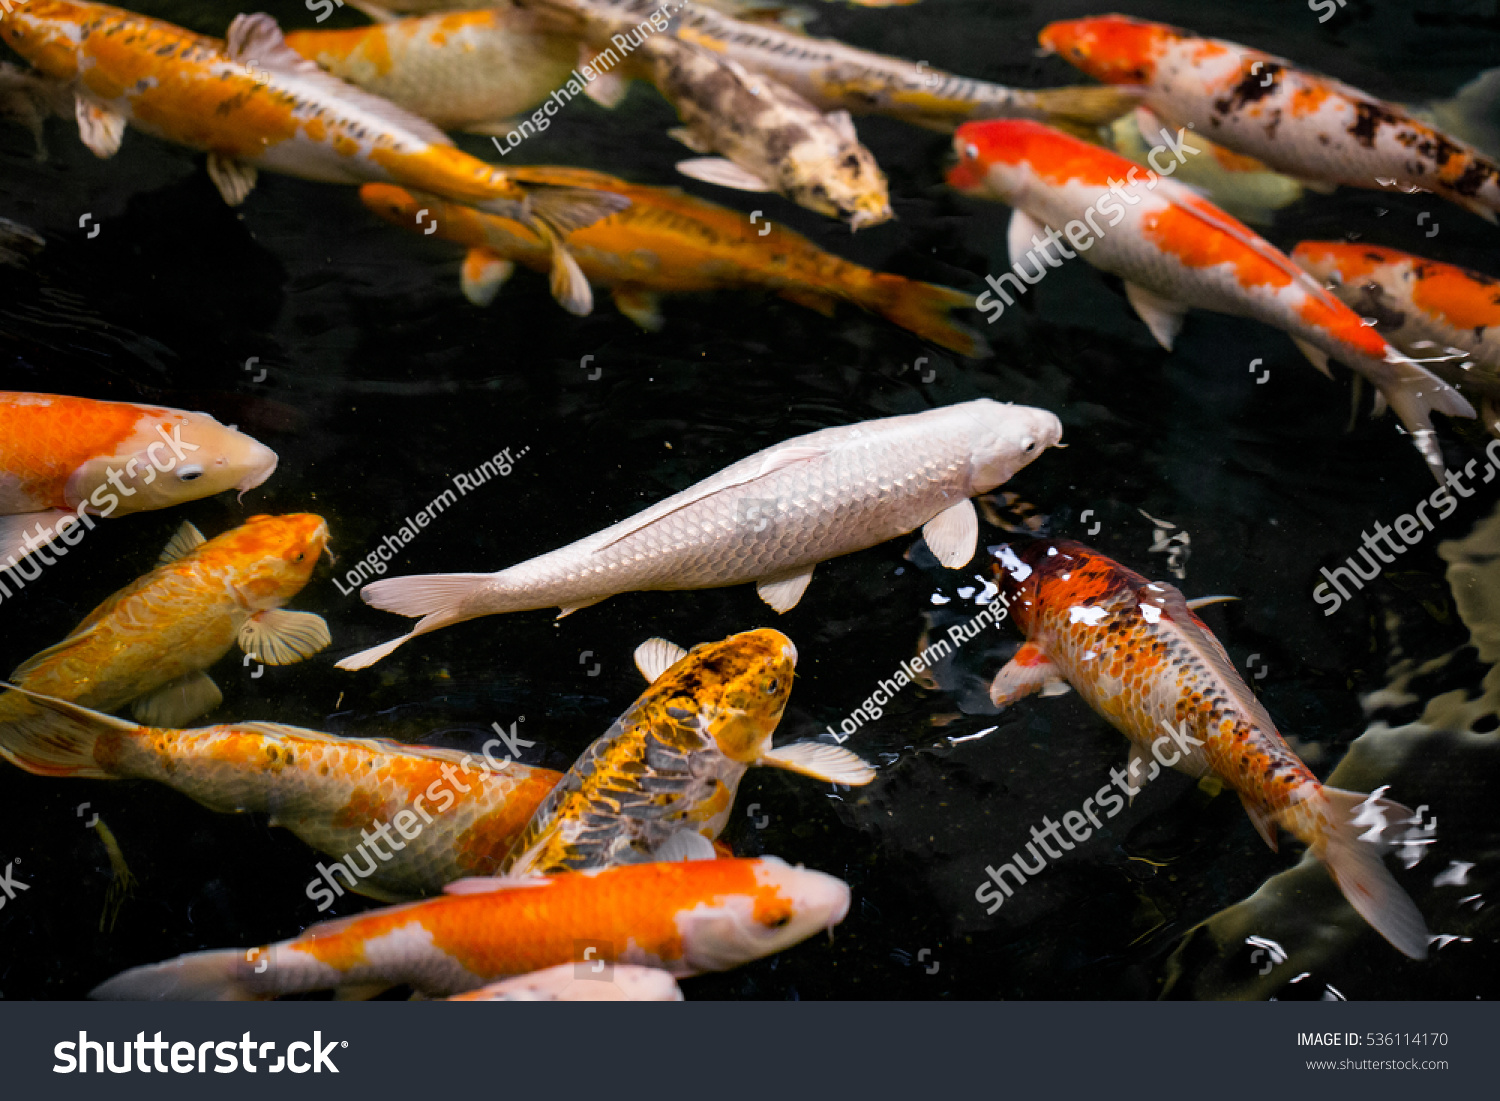 Koi carp japanese big fish stock photo 536114170 for Japanese koi carp fish